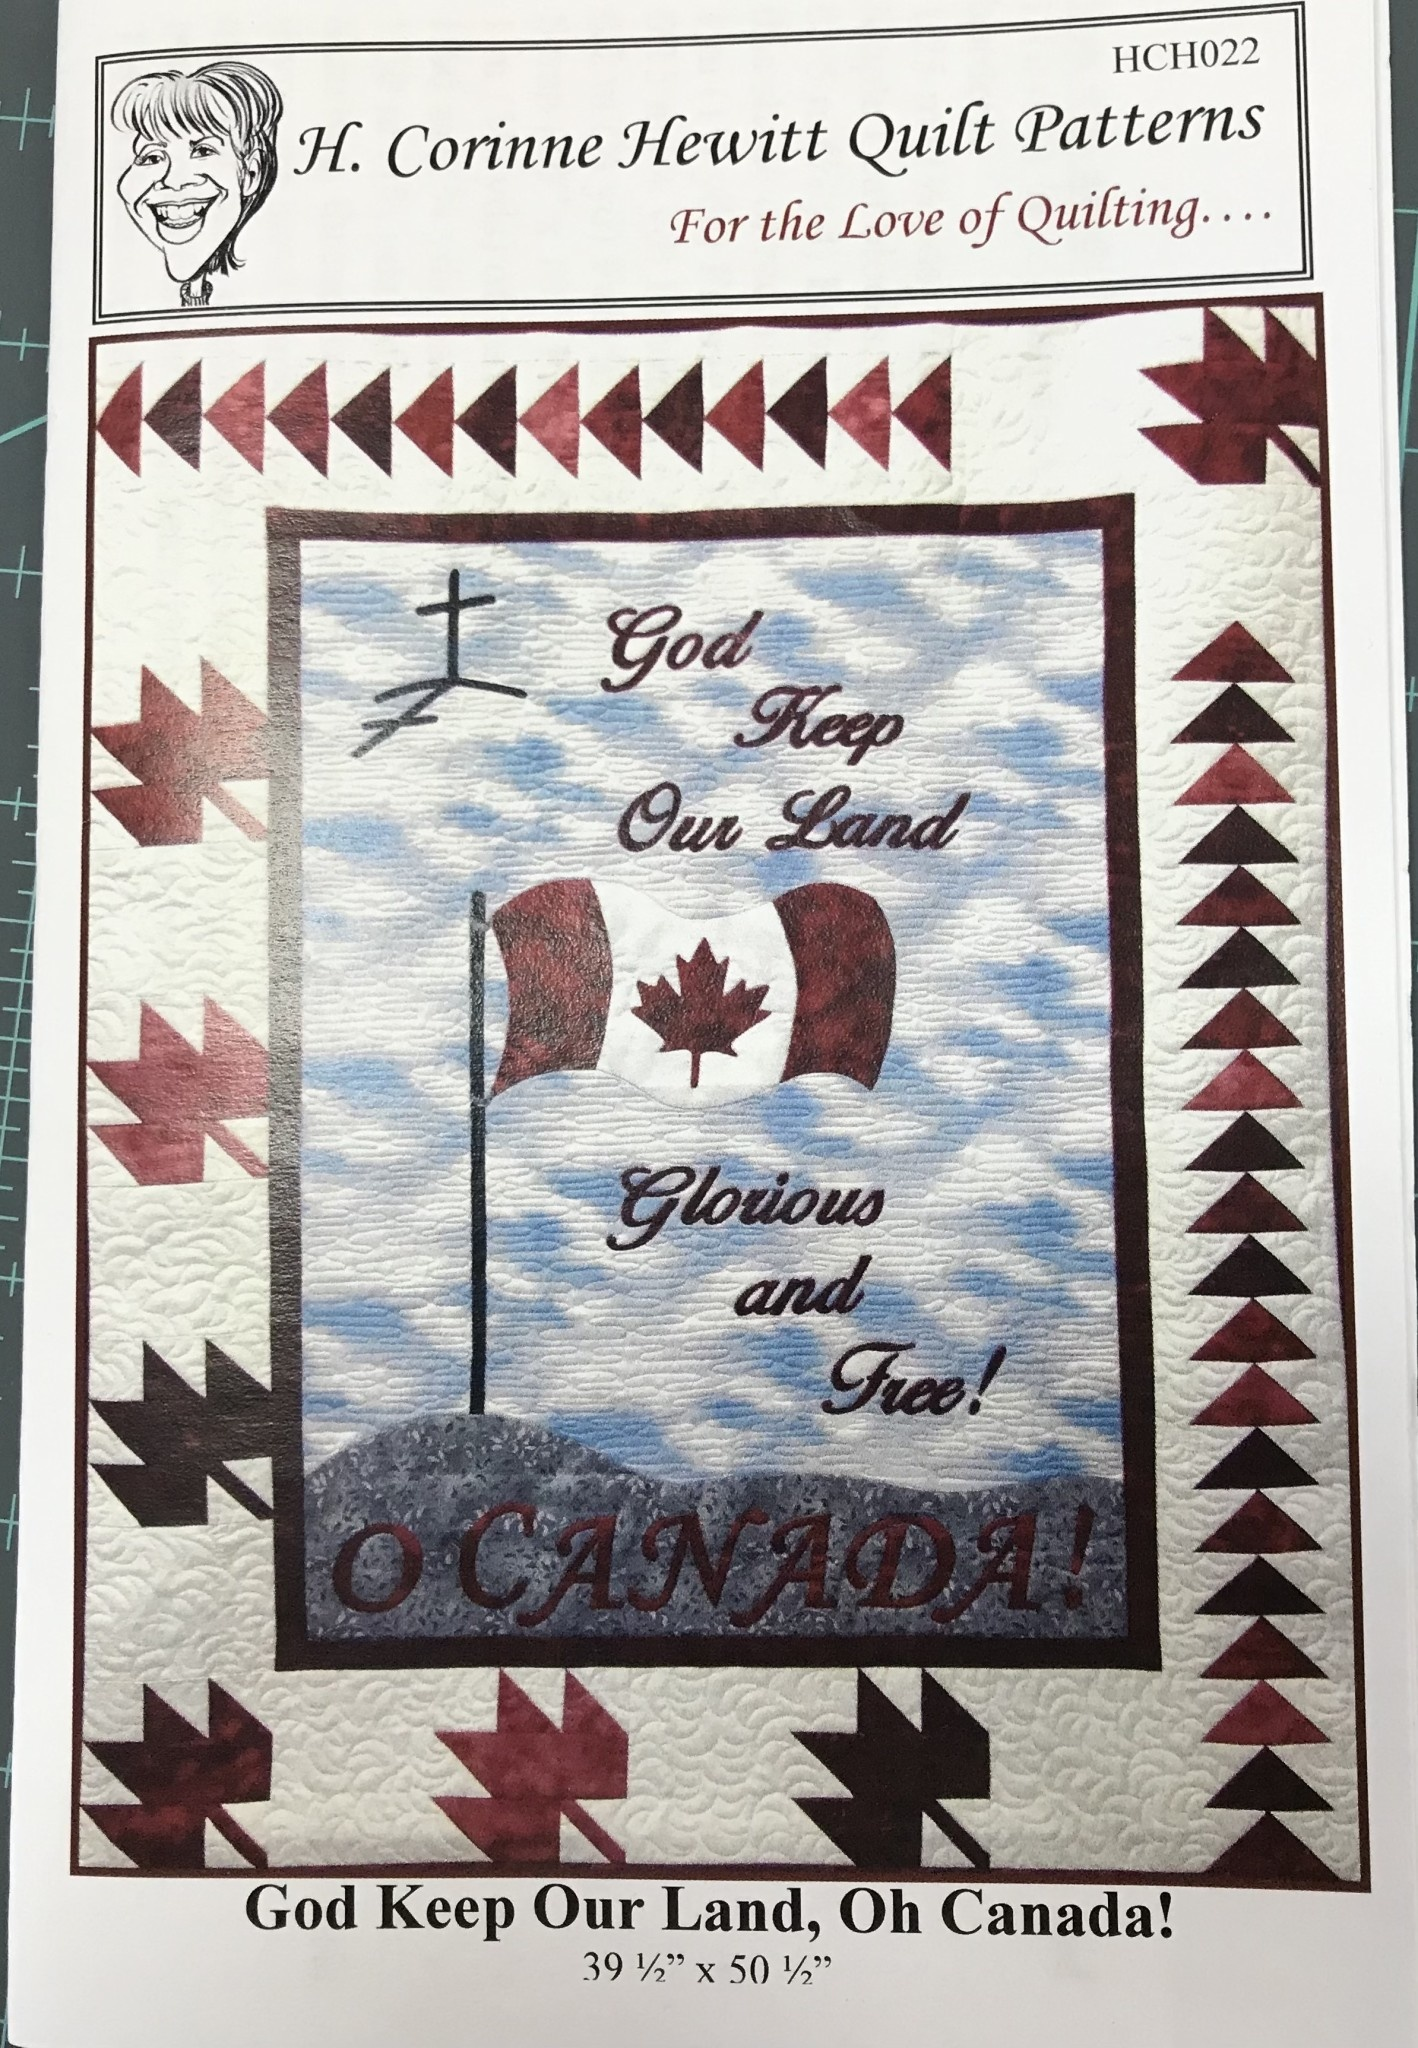 H. CORINNE HEWITT QUILT PATTERNS GOD KEEP OUR LAND, OH CANADA PATTERN